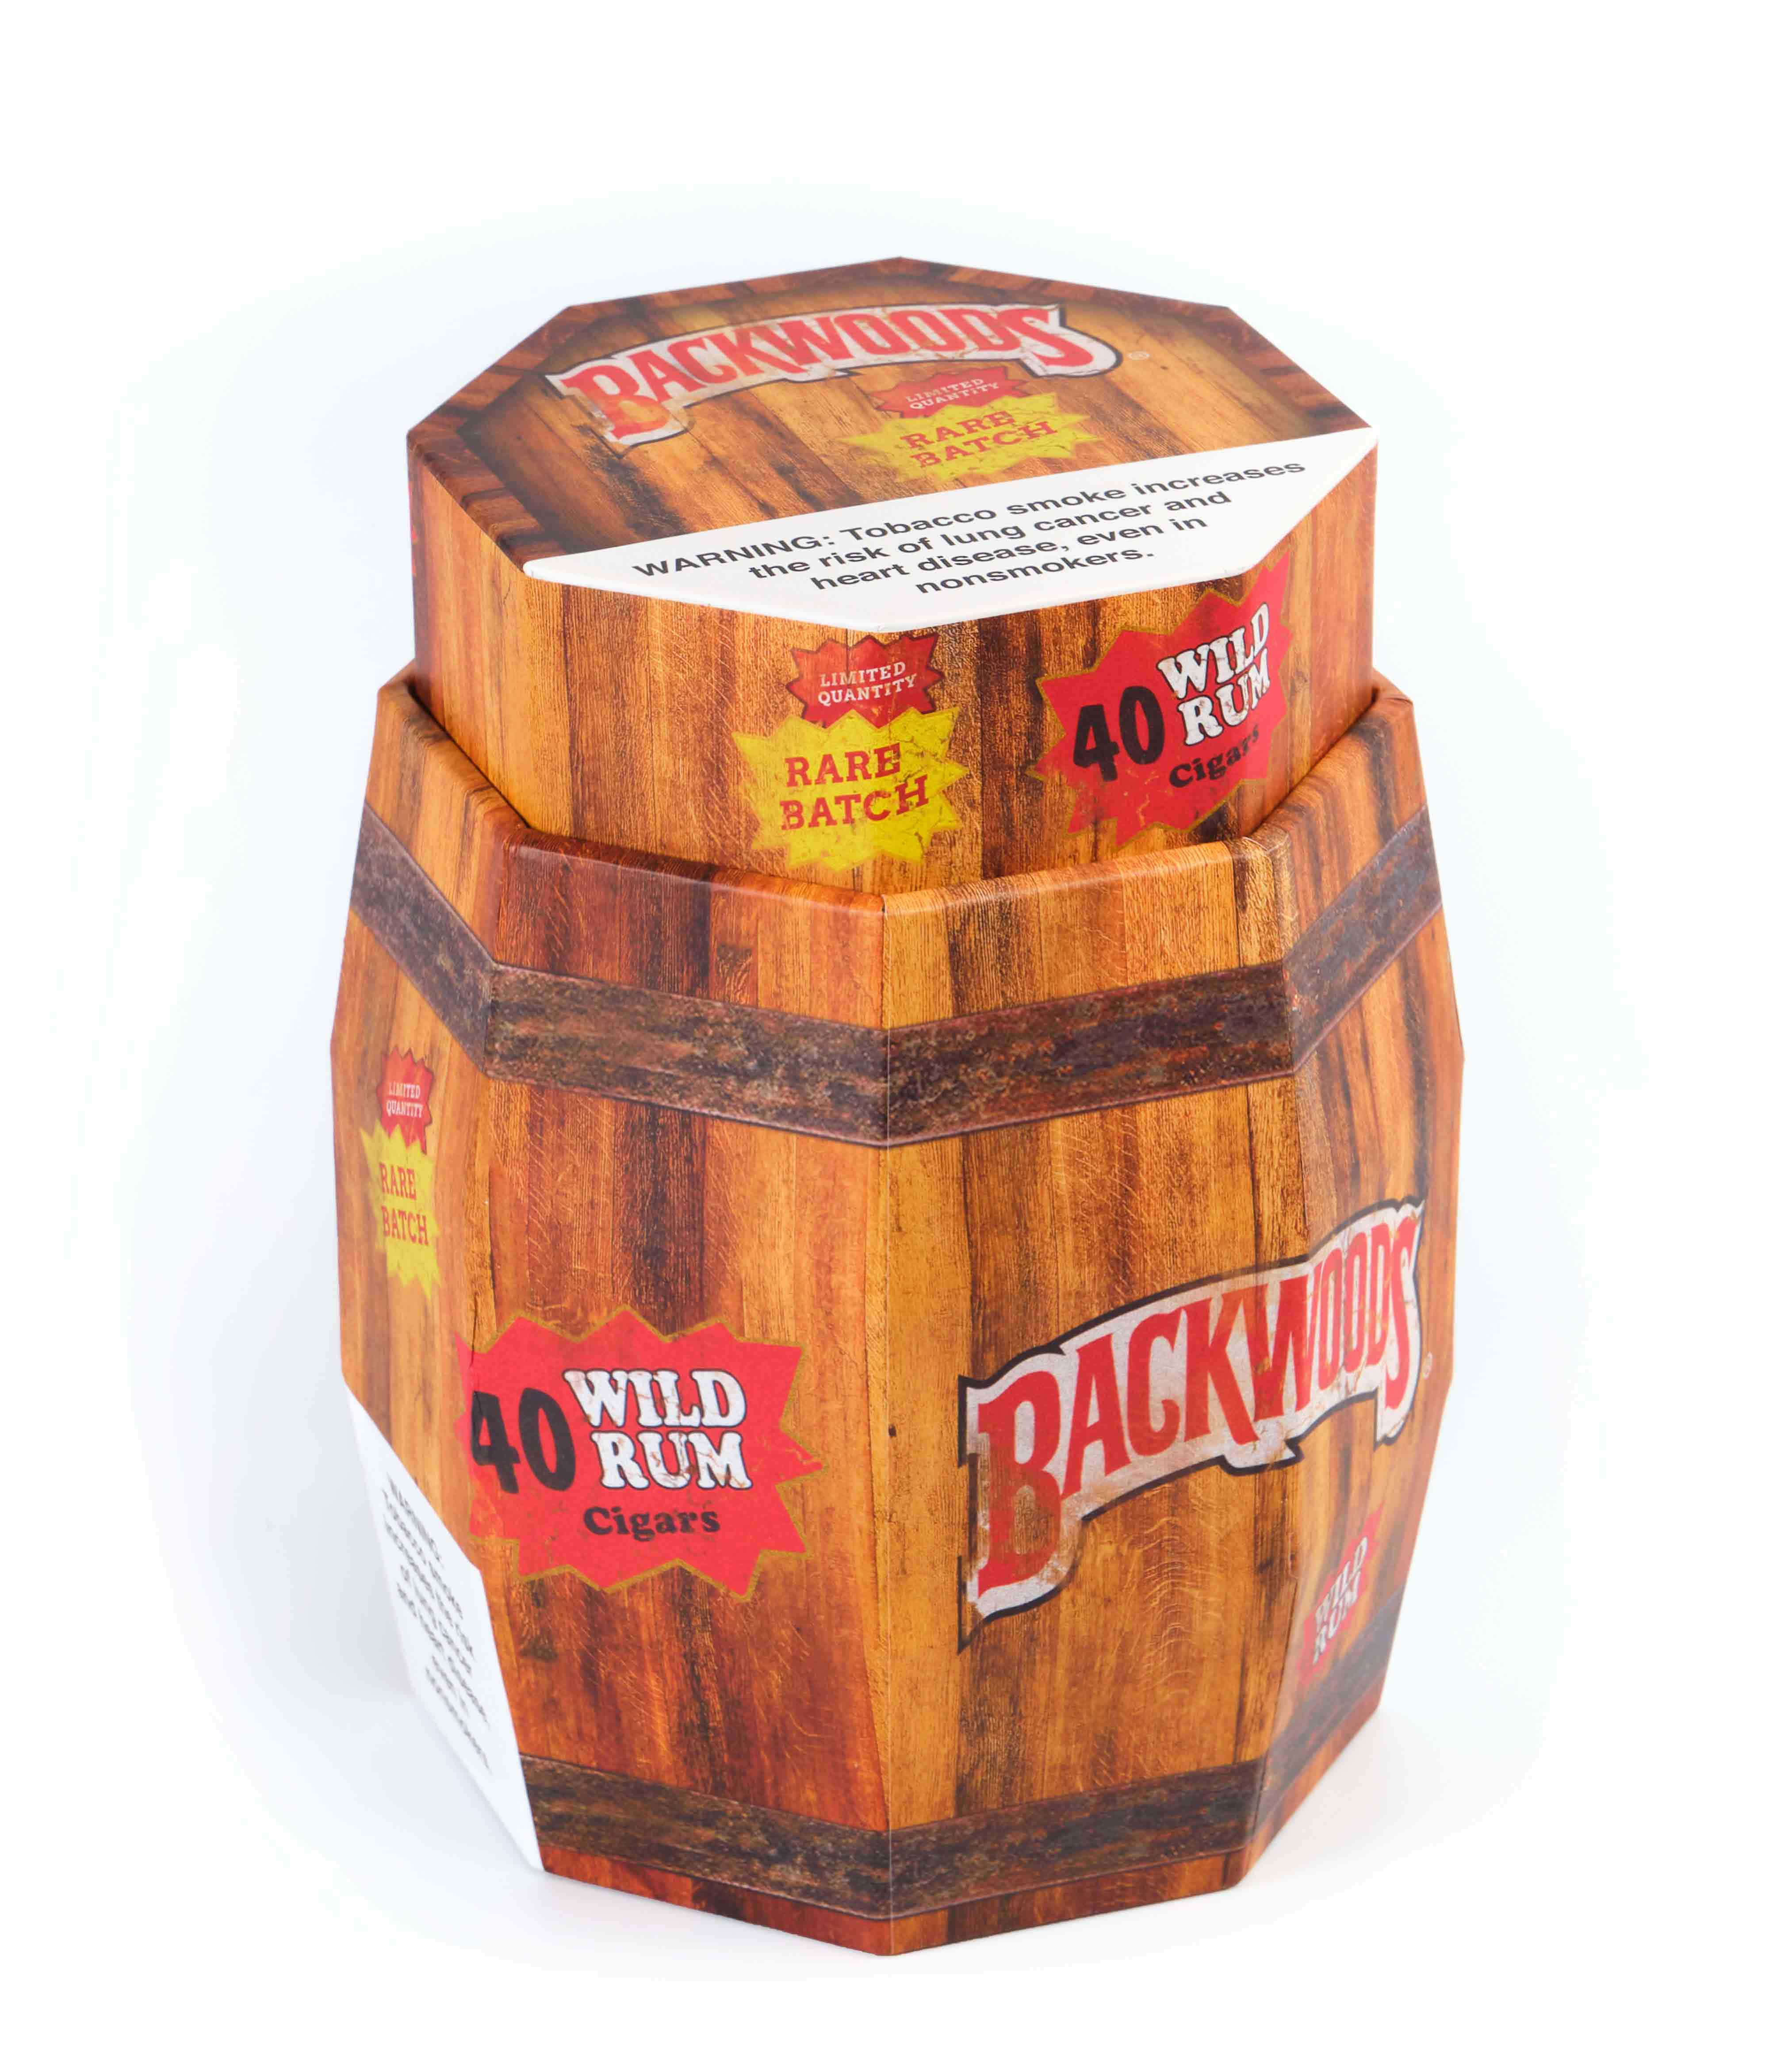 Backwoods Wild Rum Barrel